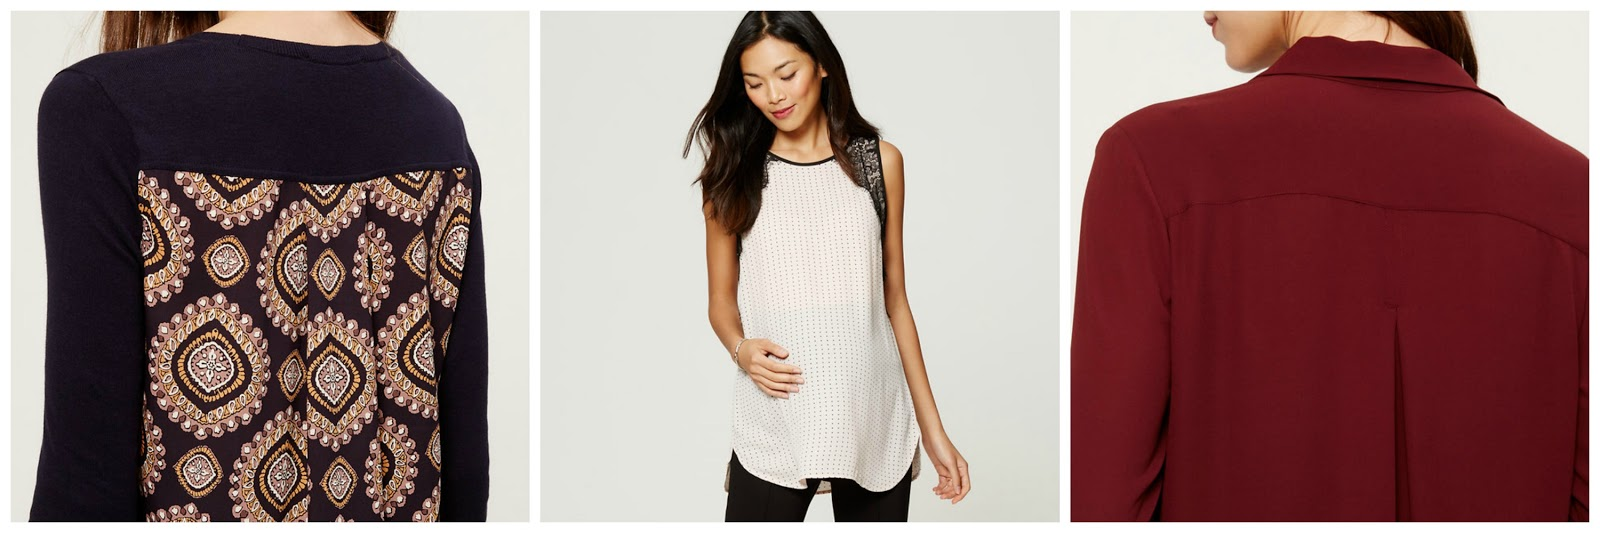 Maternity style for the holiday season the chirping moms maternity style for the holiday season ombrellifo Choice Image